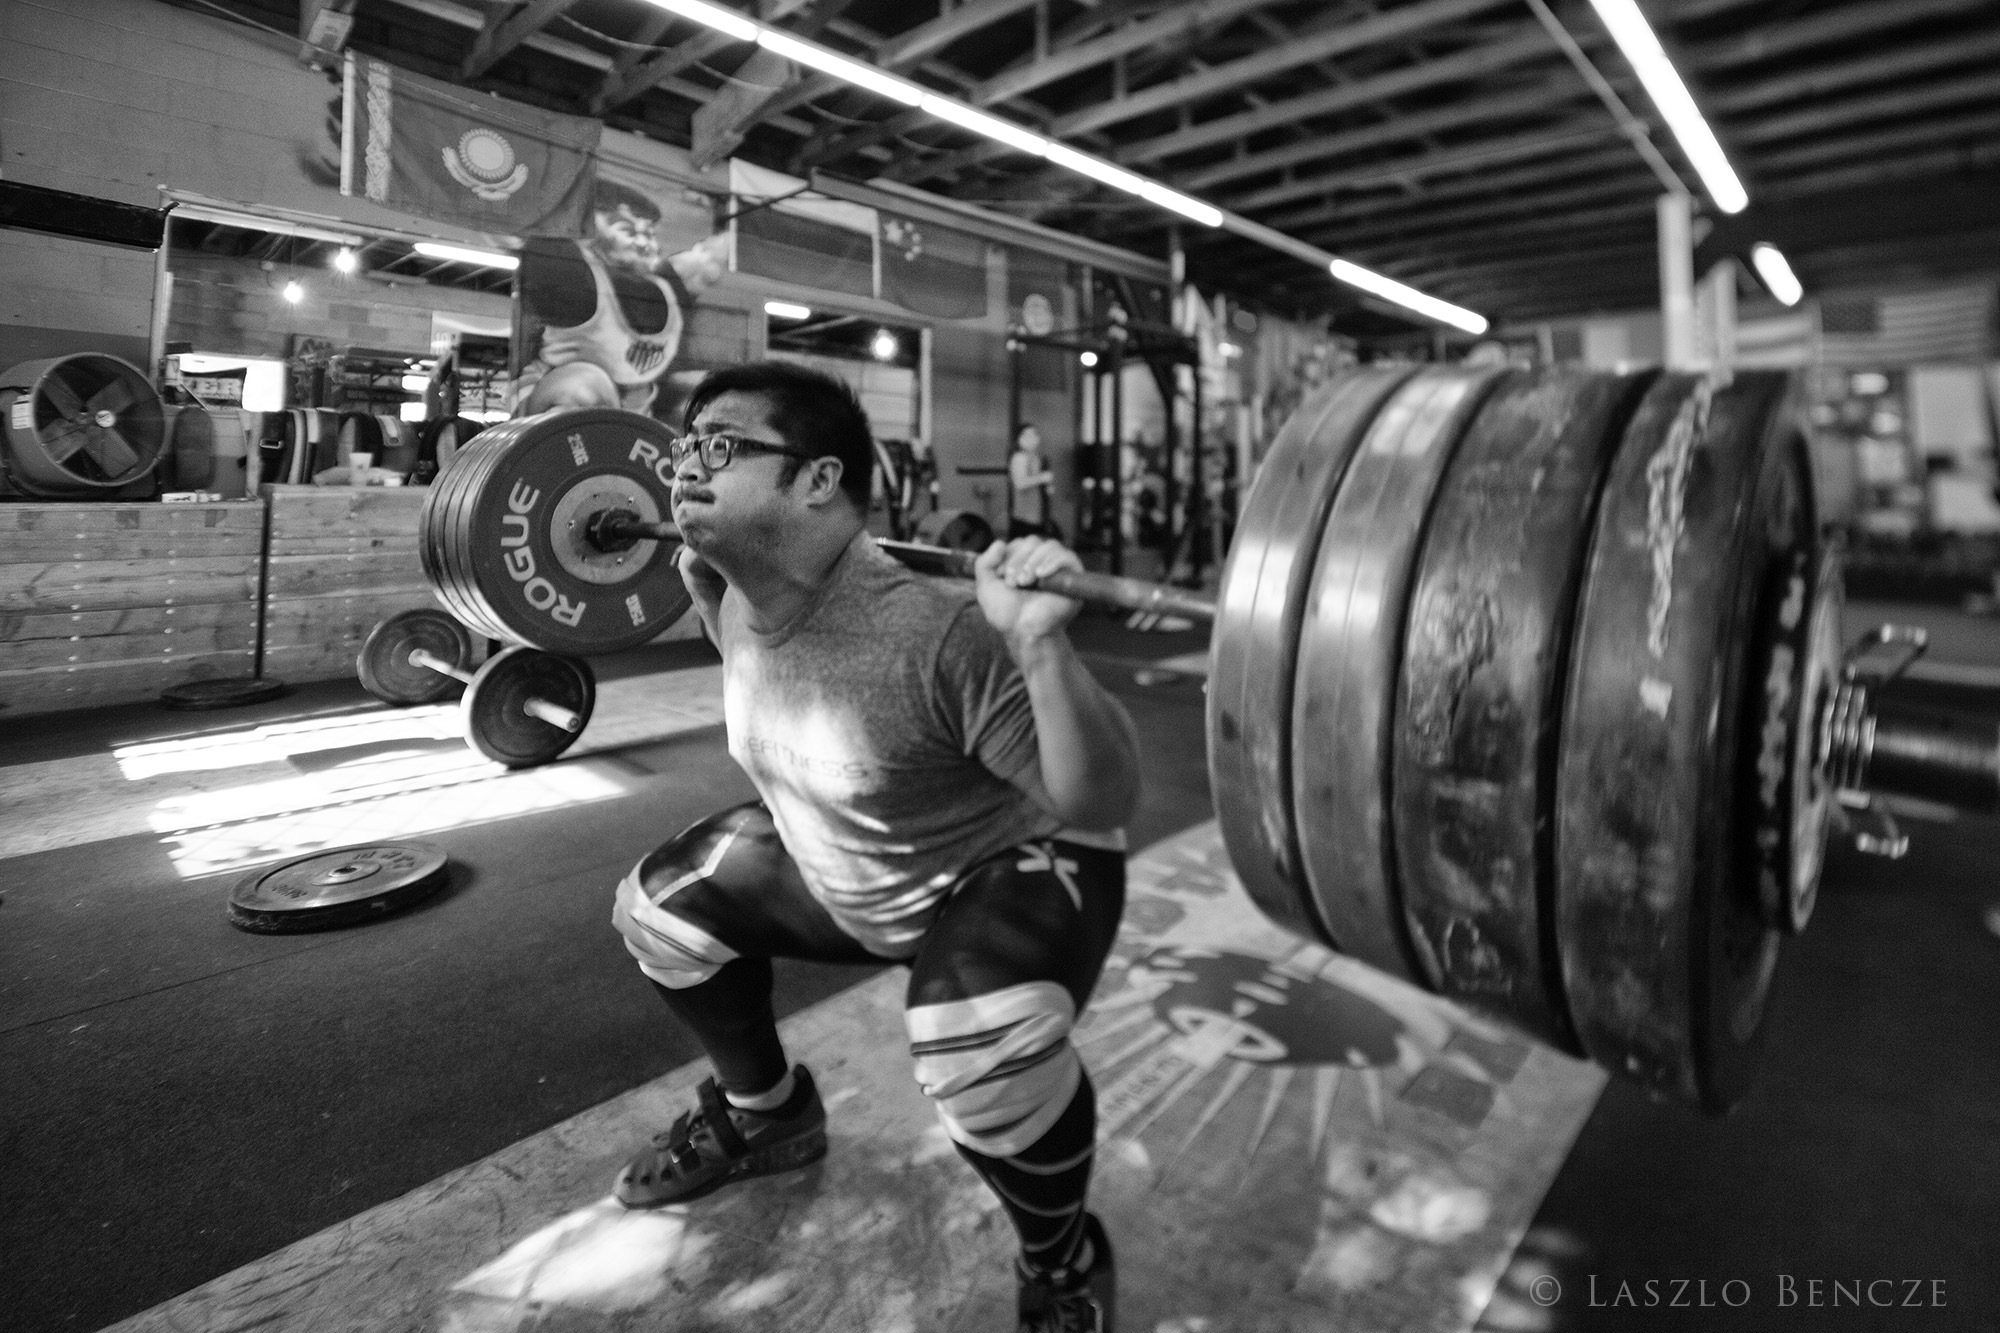 Weightlifting #3 by Laszlo Bencze